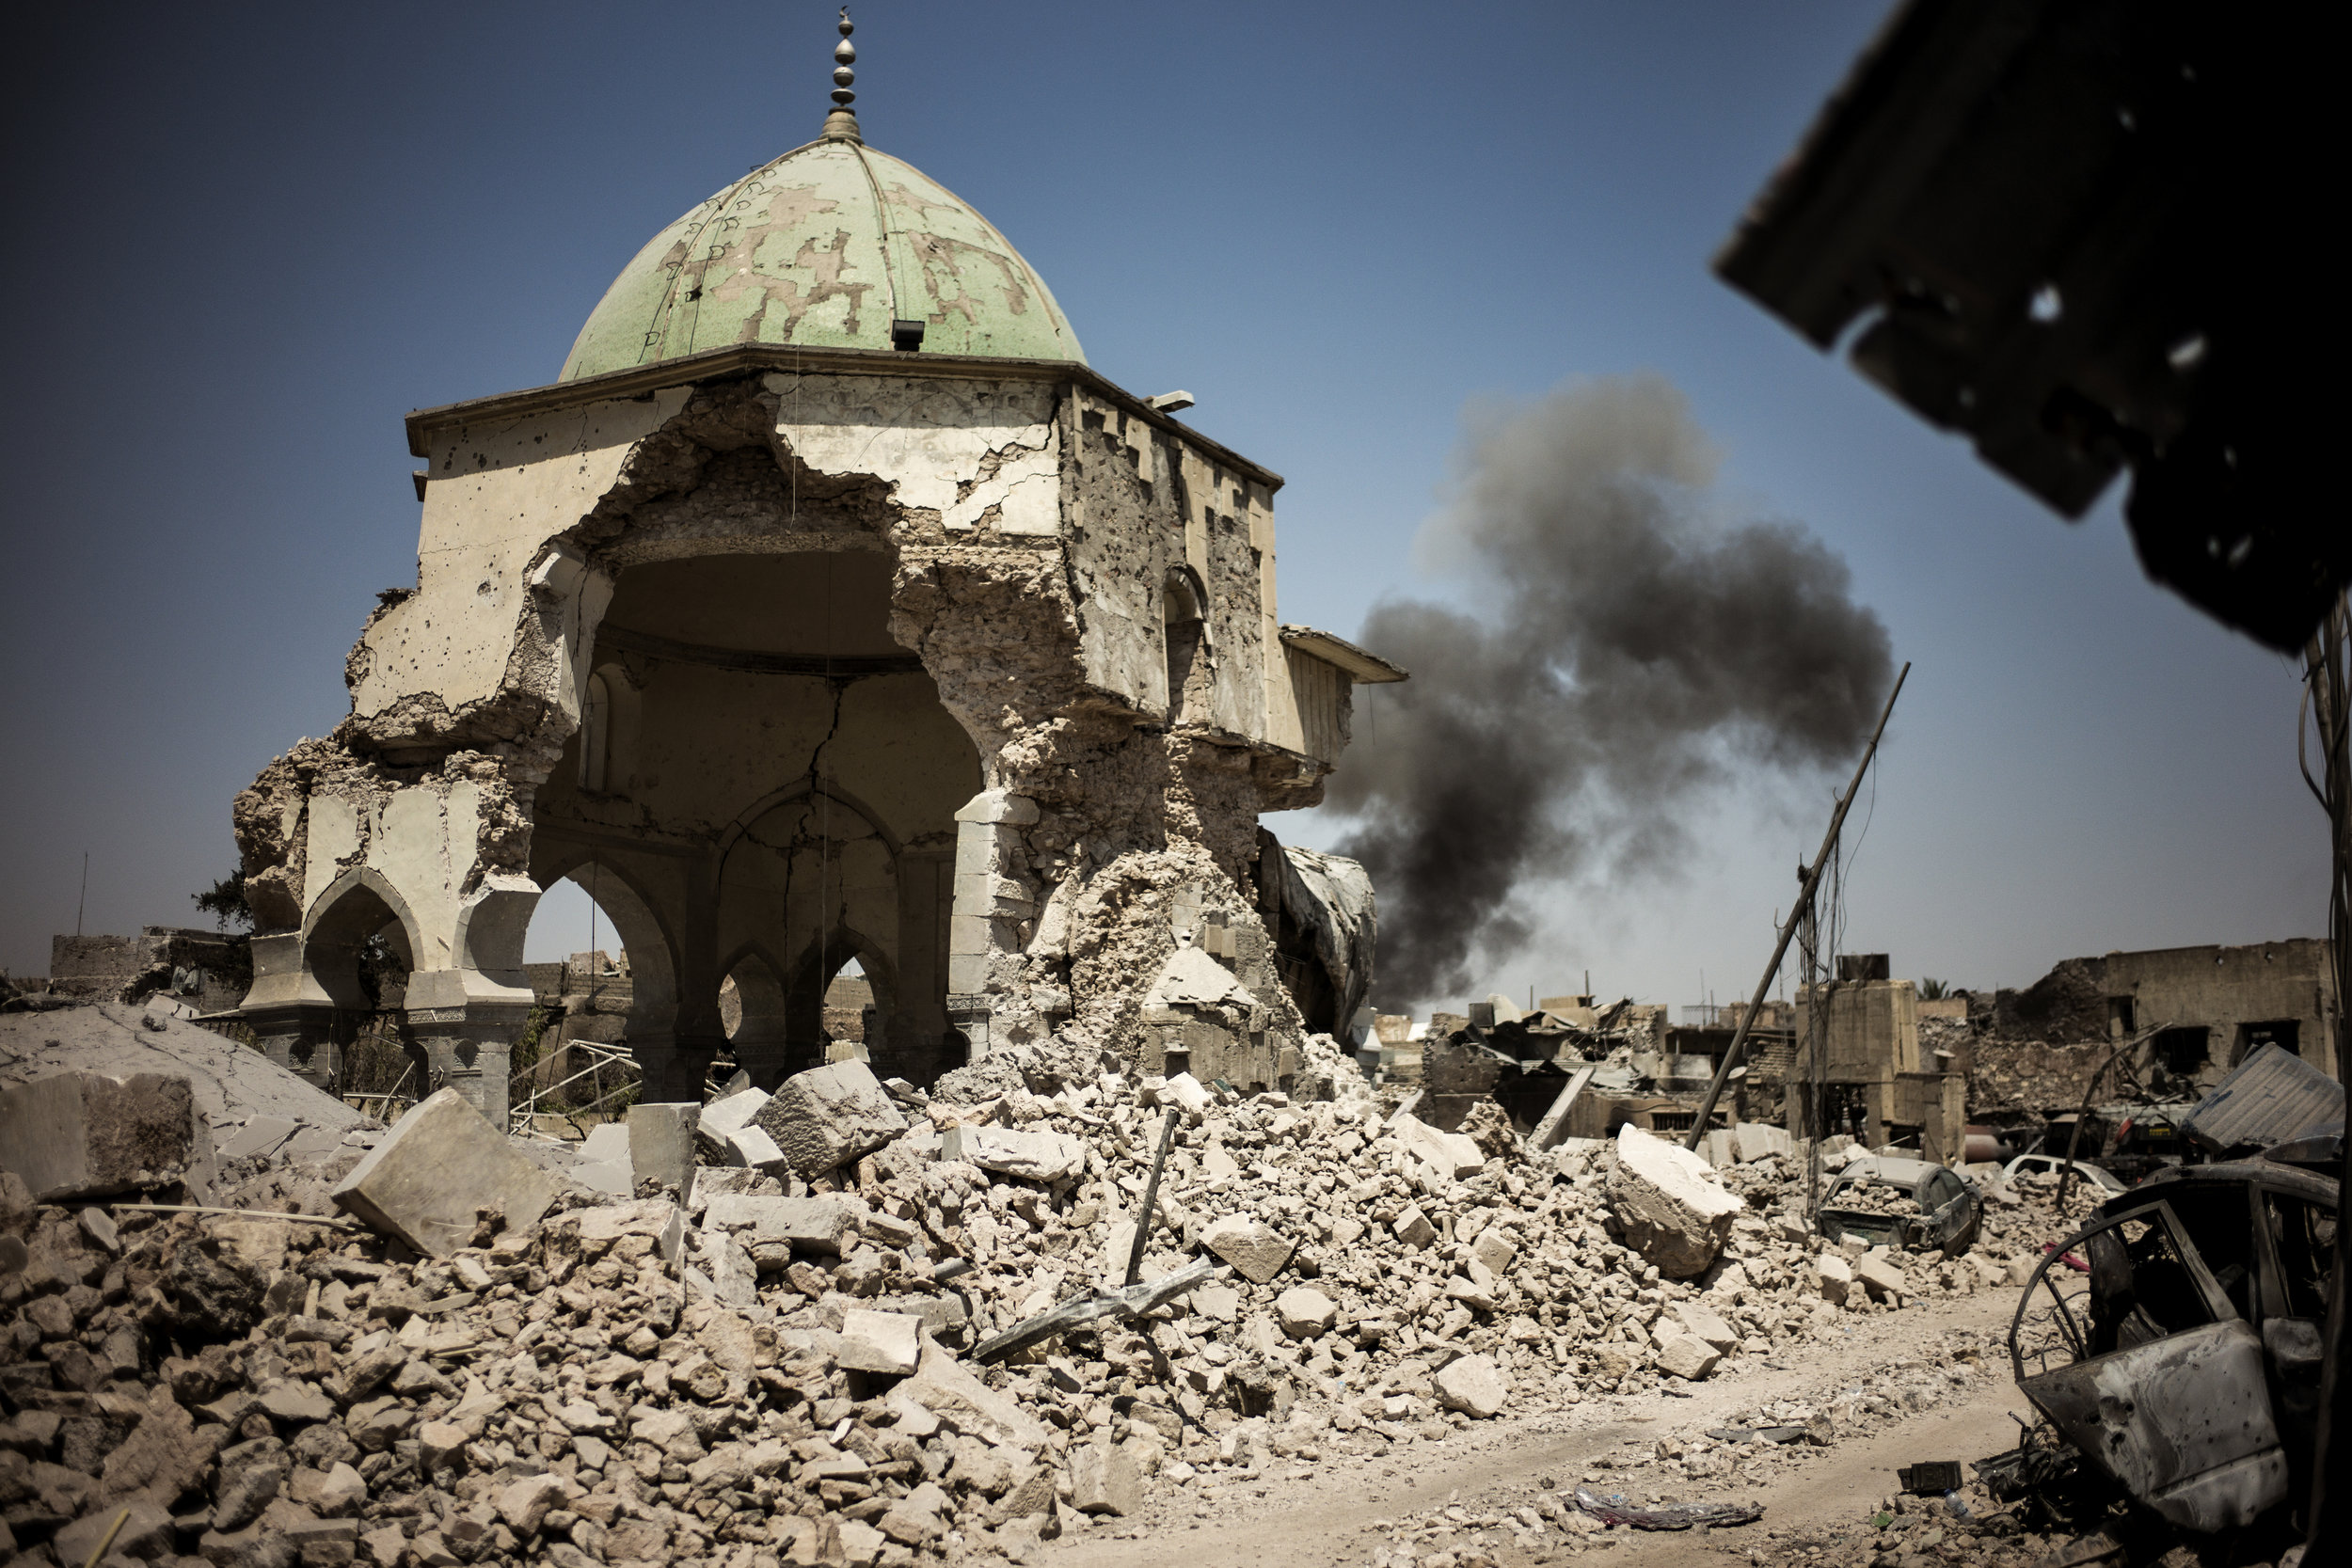 The ruins of the Al Nuri Mosque where the caliphate was declared in 2014.